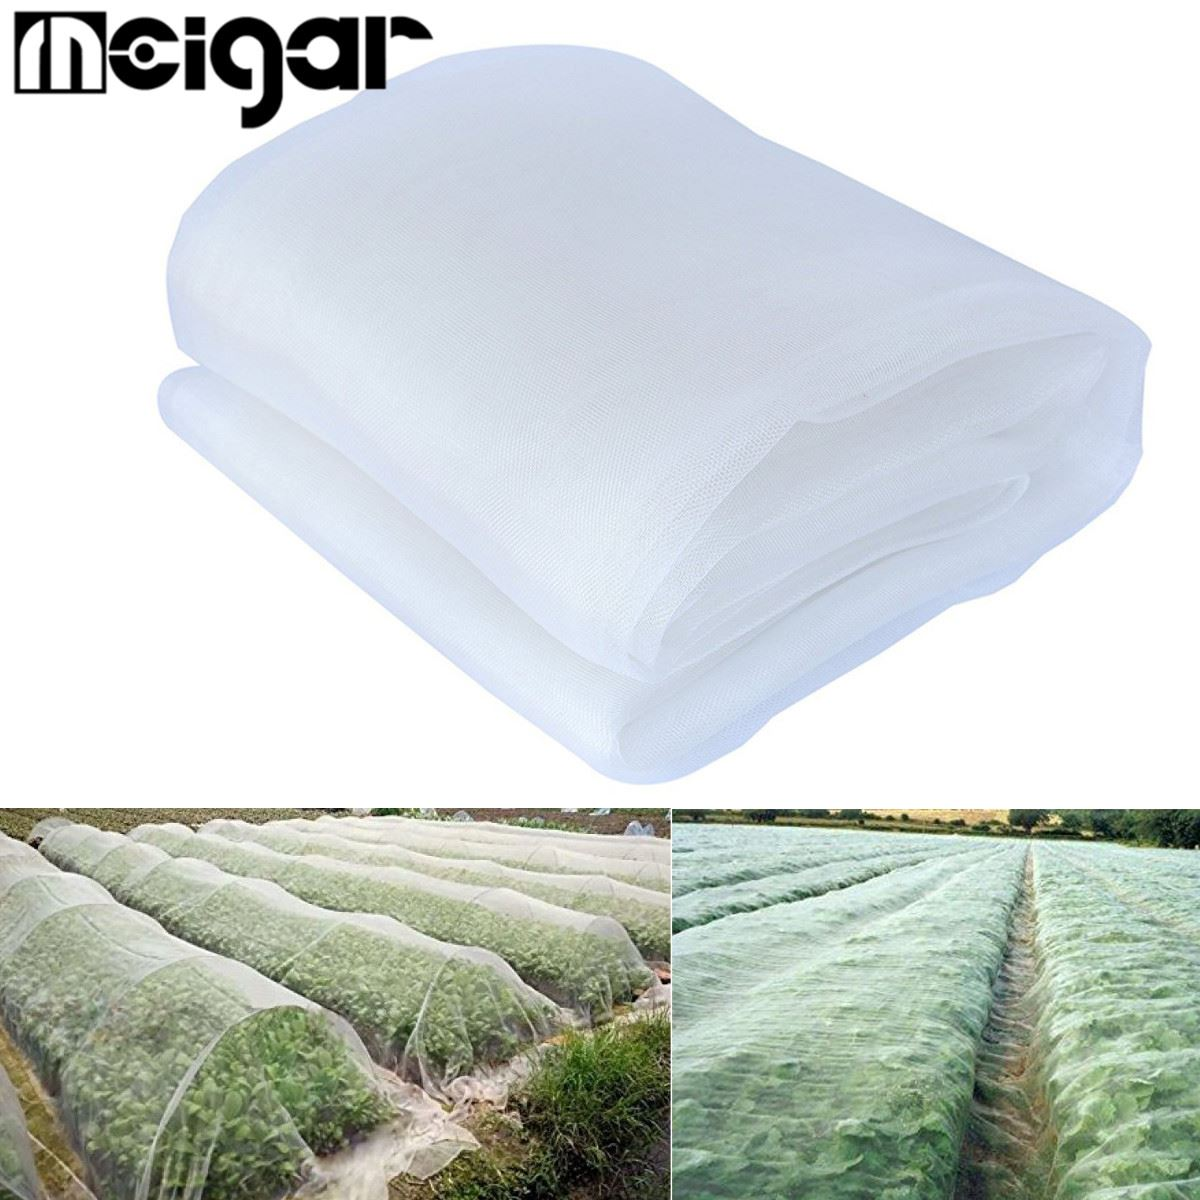 2.4x6M Mosquito Netting Bug Insect Bird Net Hunting Barrier Protect Planter Mesh Net Garden Orchard <font><b>Pest</b></font> Control Tools Supplies